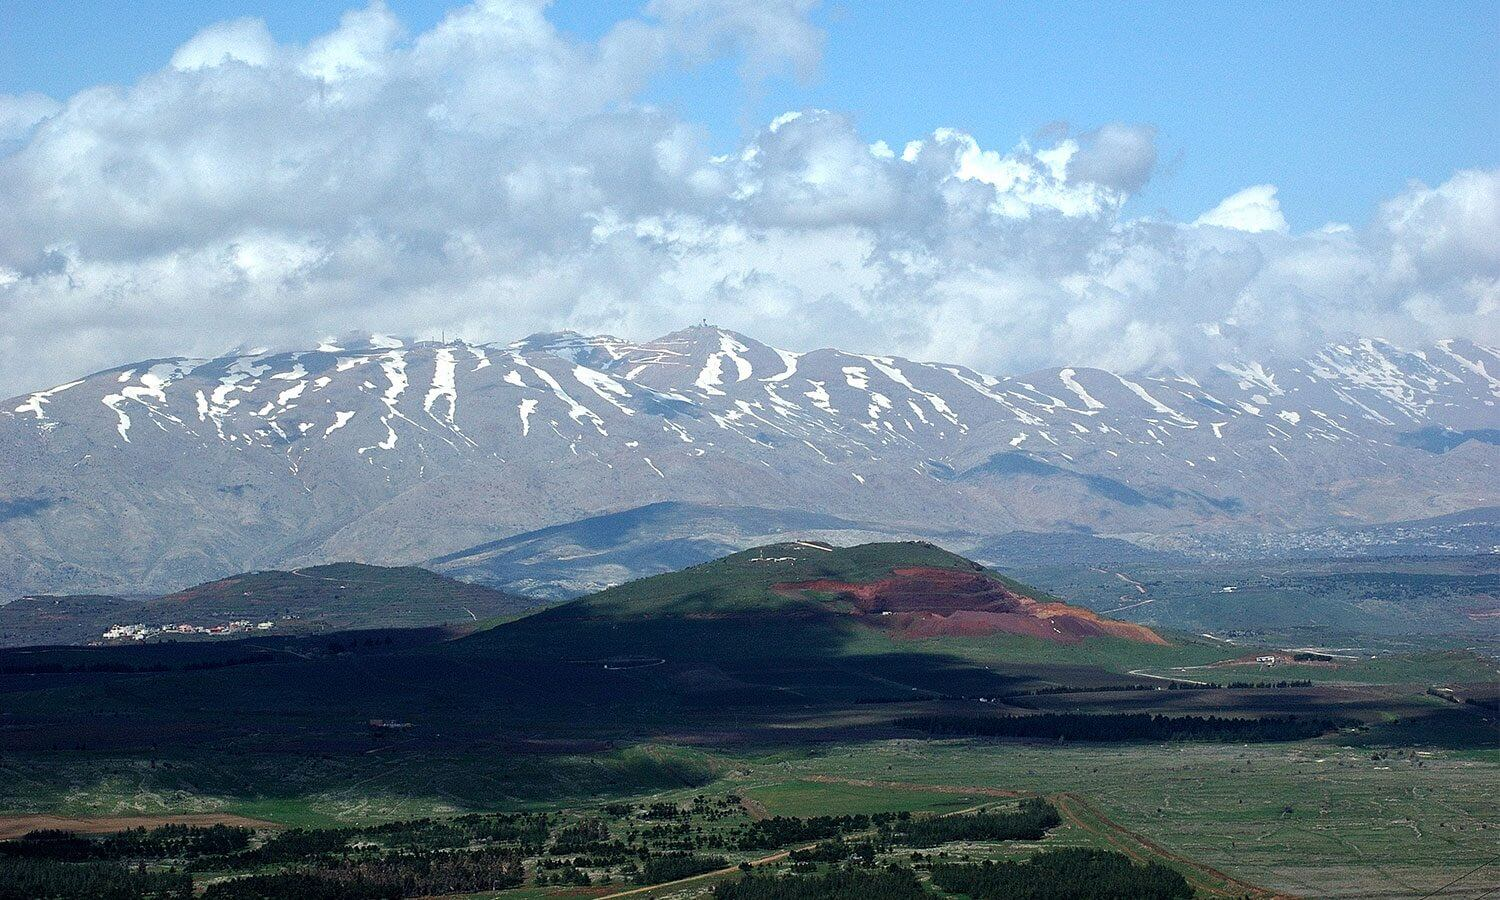 Golan Heights and Upper Galilee